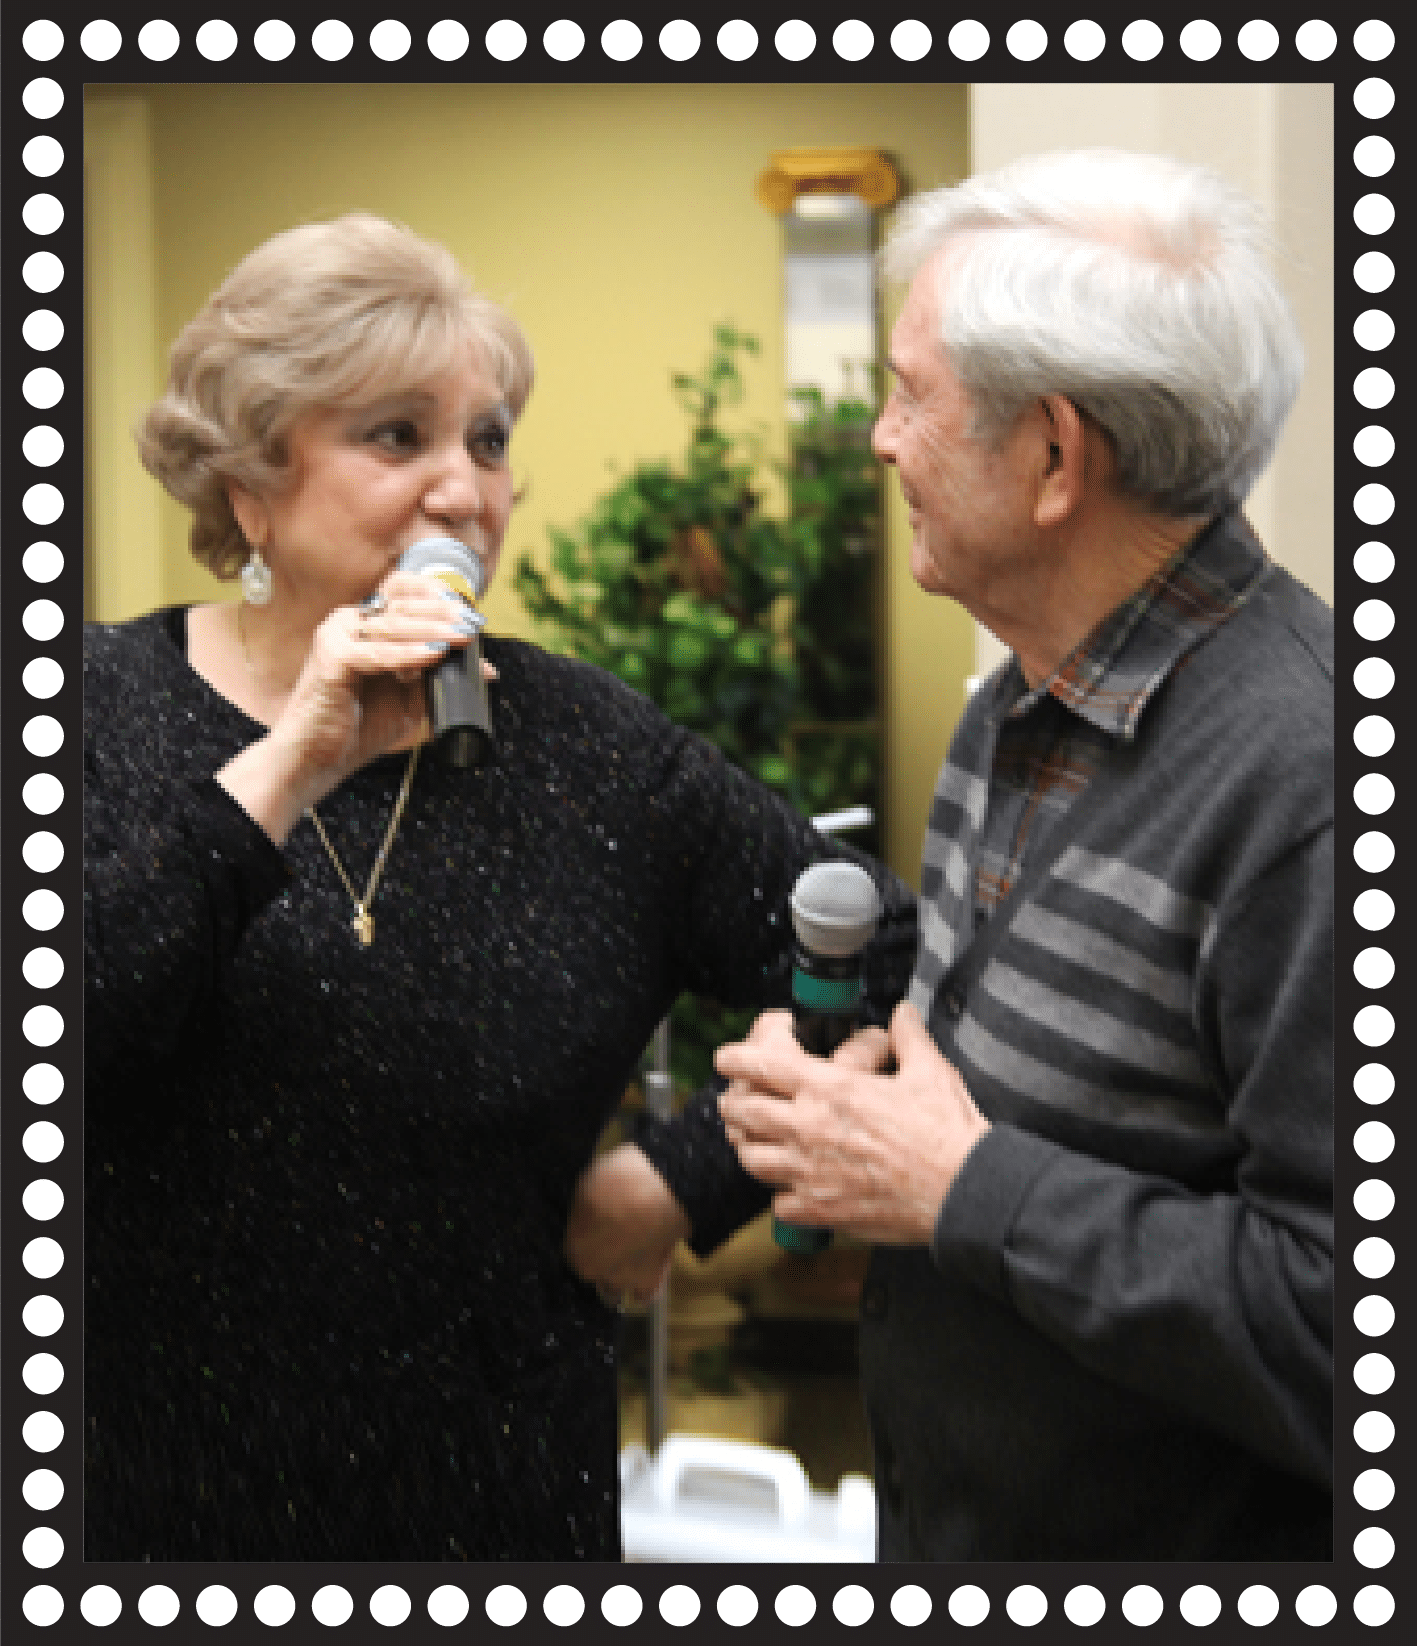 Man and woman singing together with microphone facing each other